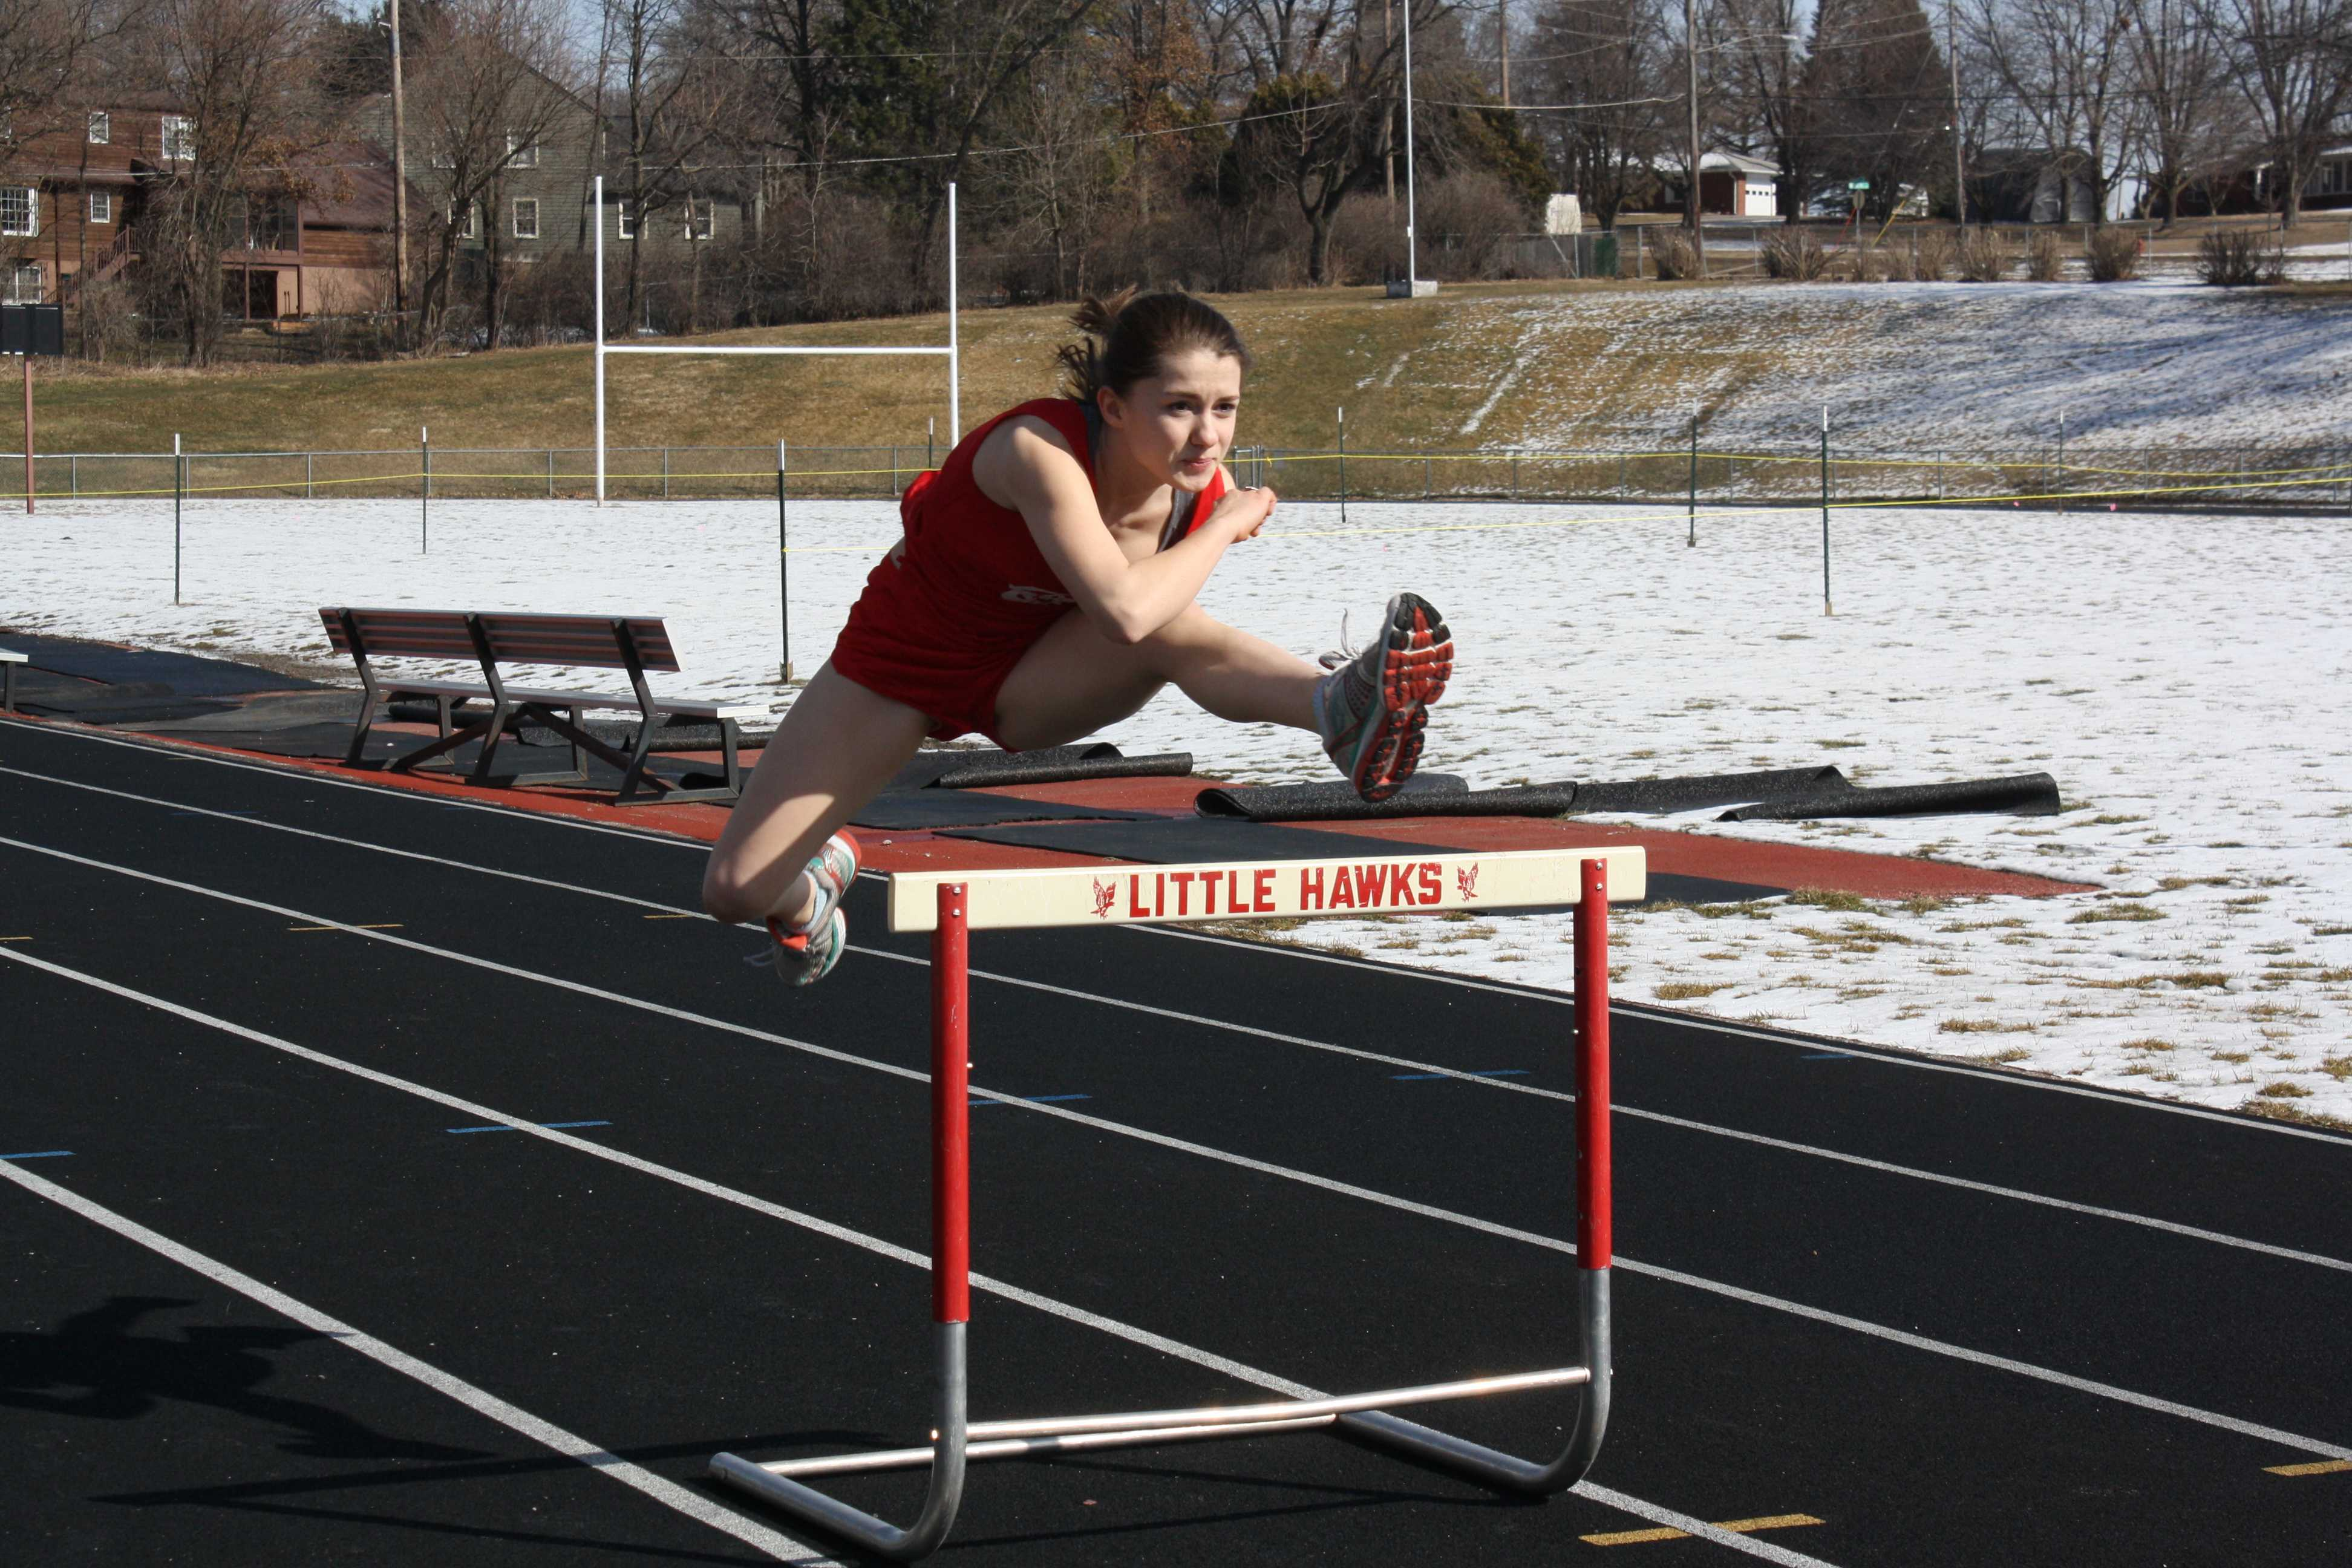 Terra Perez takes a hurdle in stride on the track. Photo by Daniela Perret